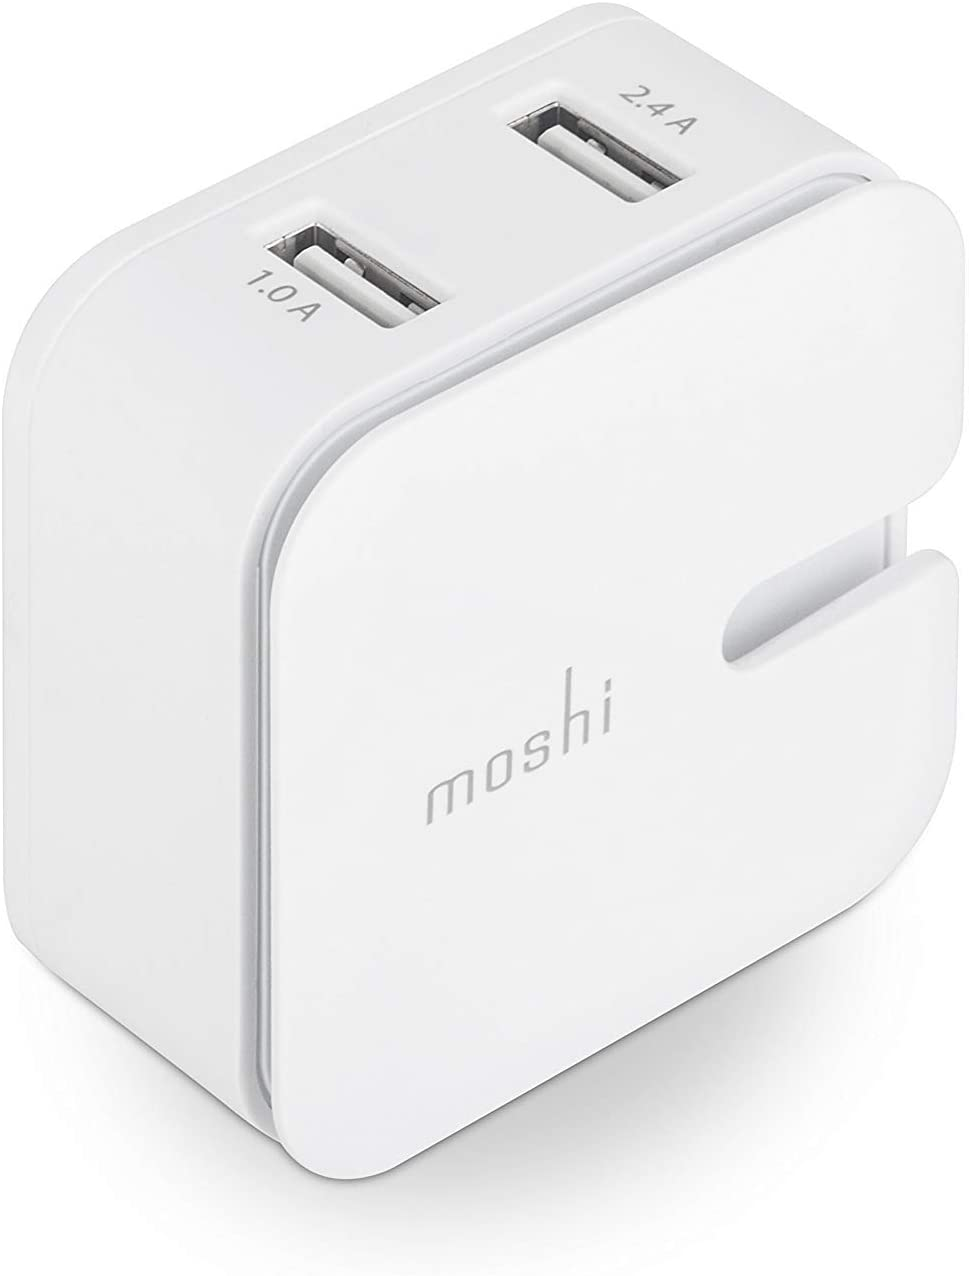 Moshi Rewind 2 Dual-Port Power Adapter for iPhone, iPad, iPod and USB Charging Devices, White